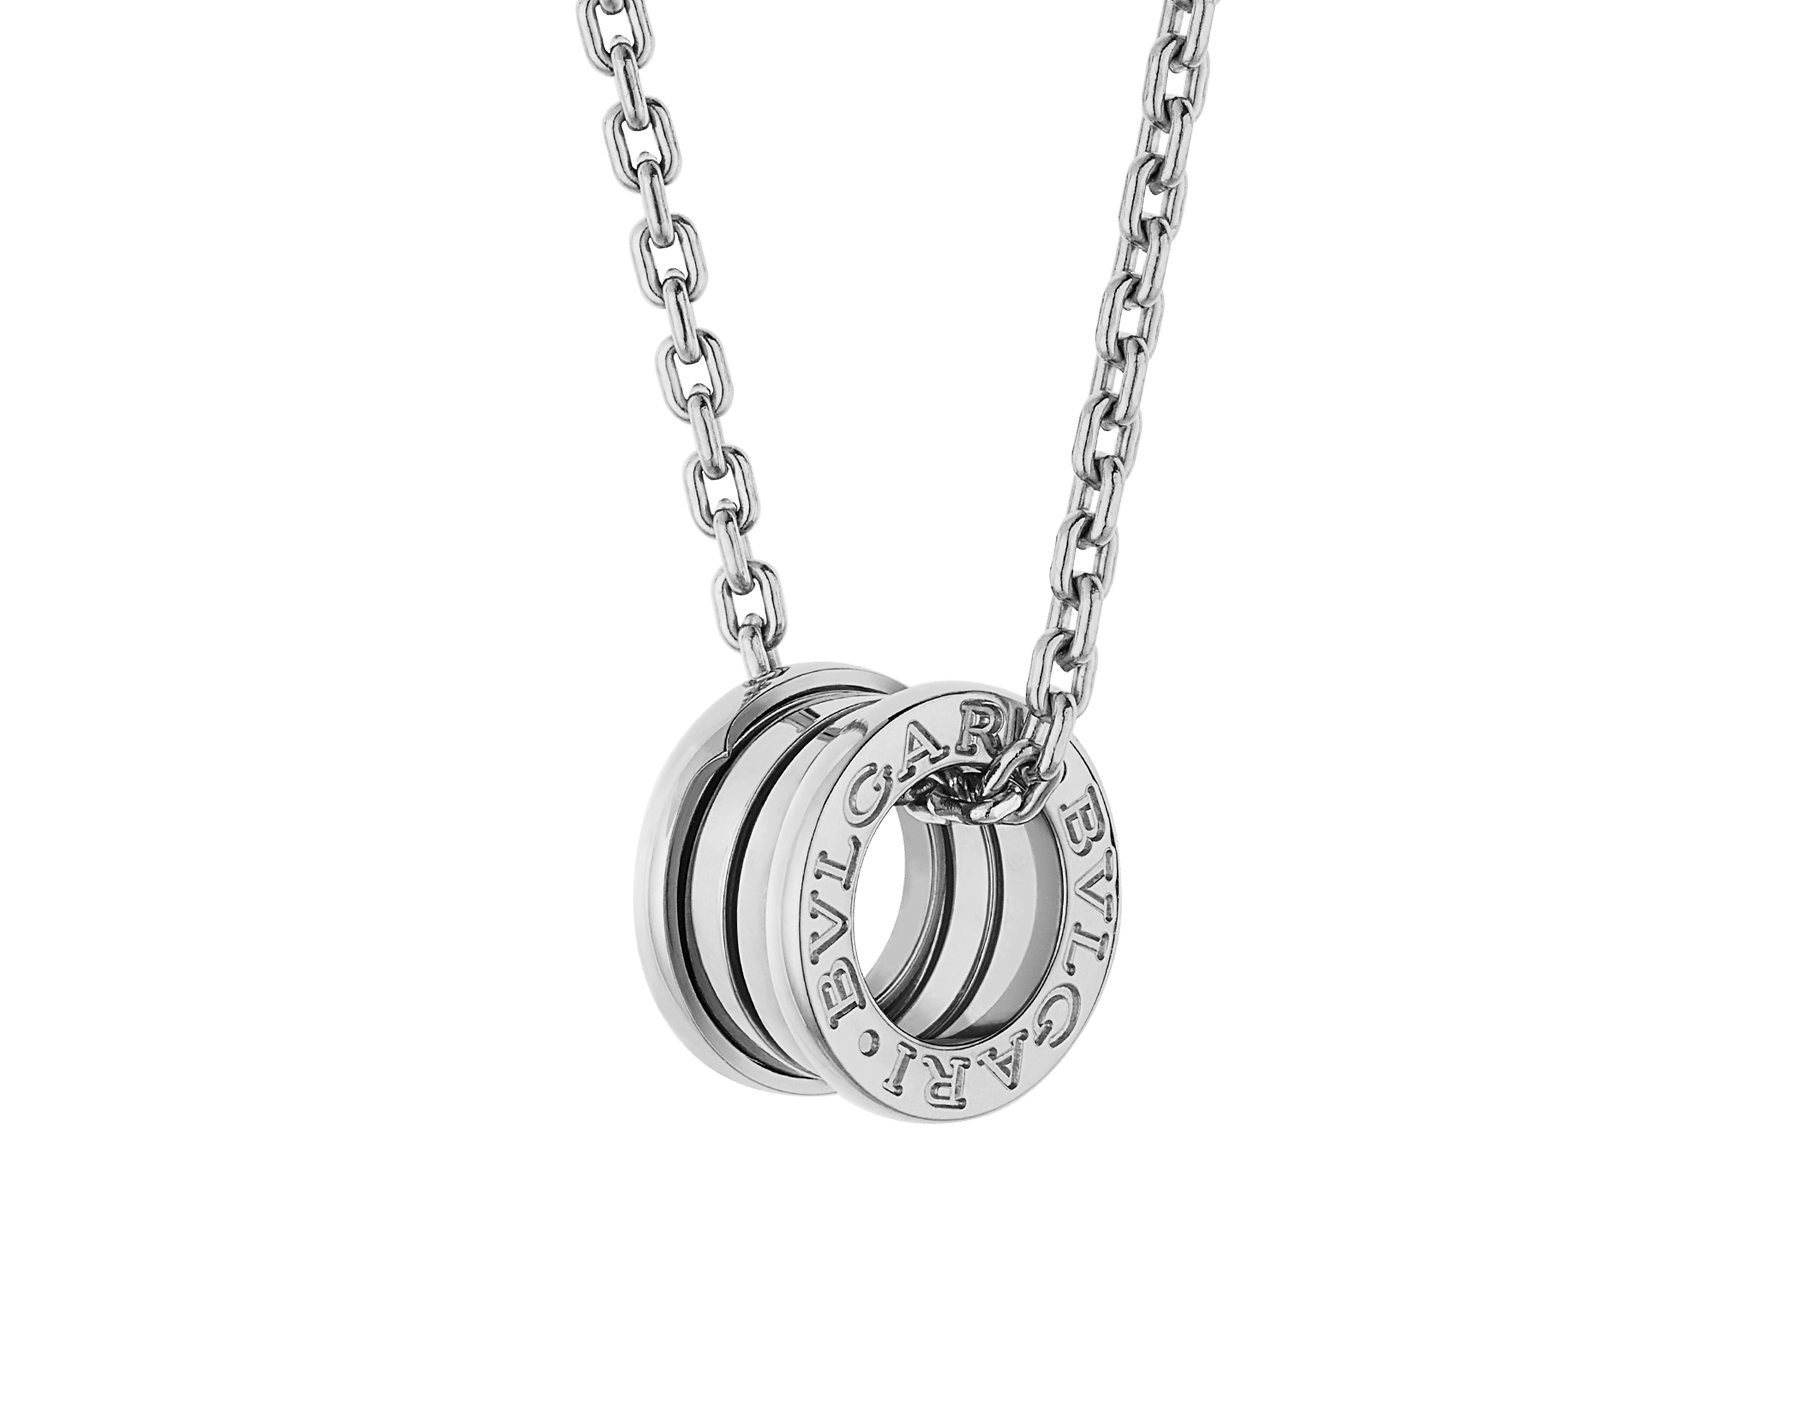 B.zero1 pendant necklace in 18 kt white gold 358347 image 1